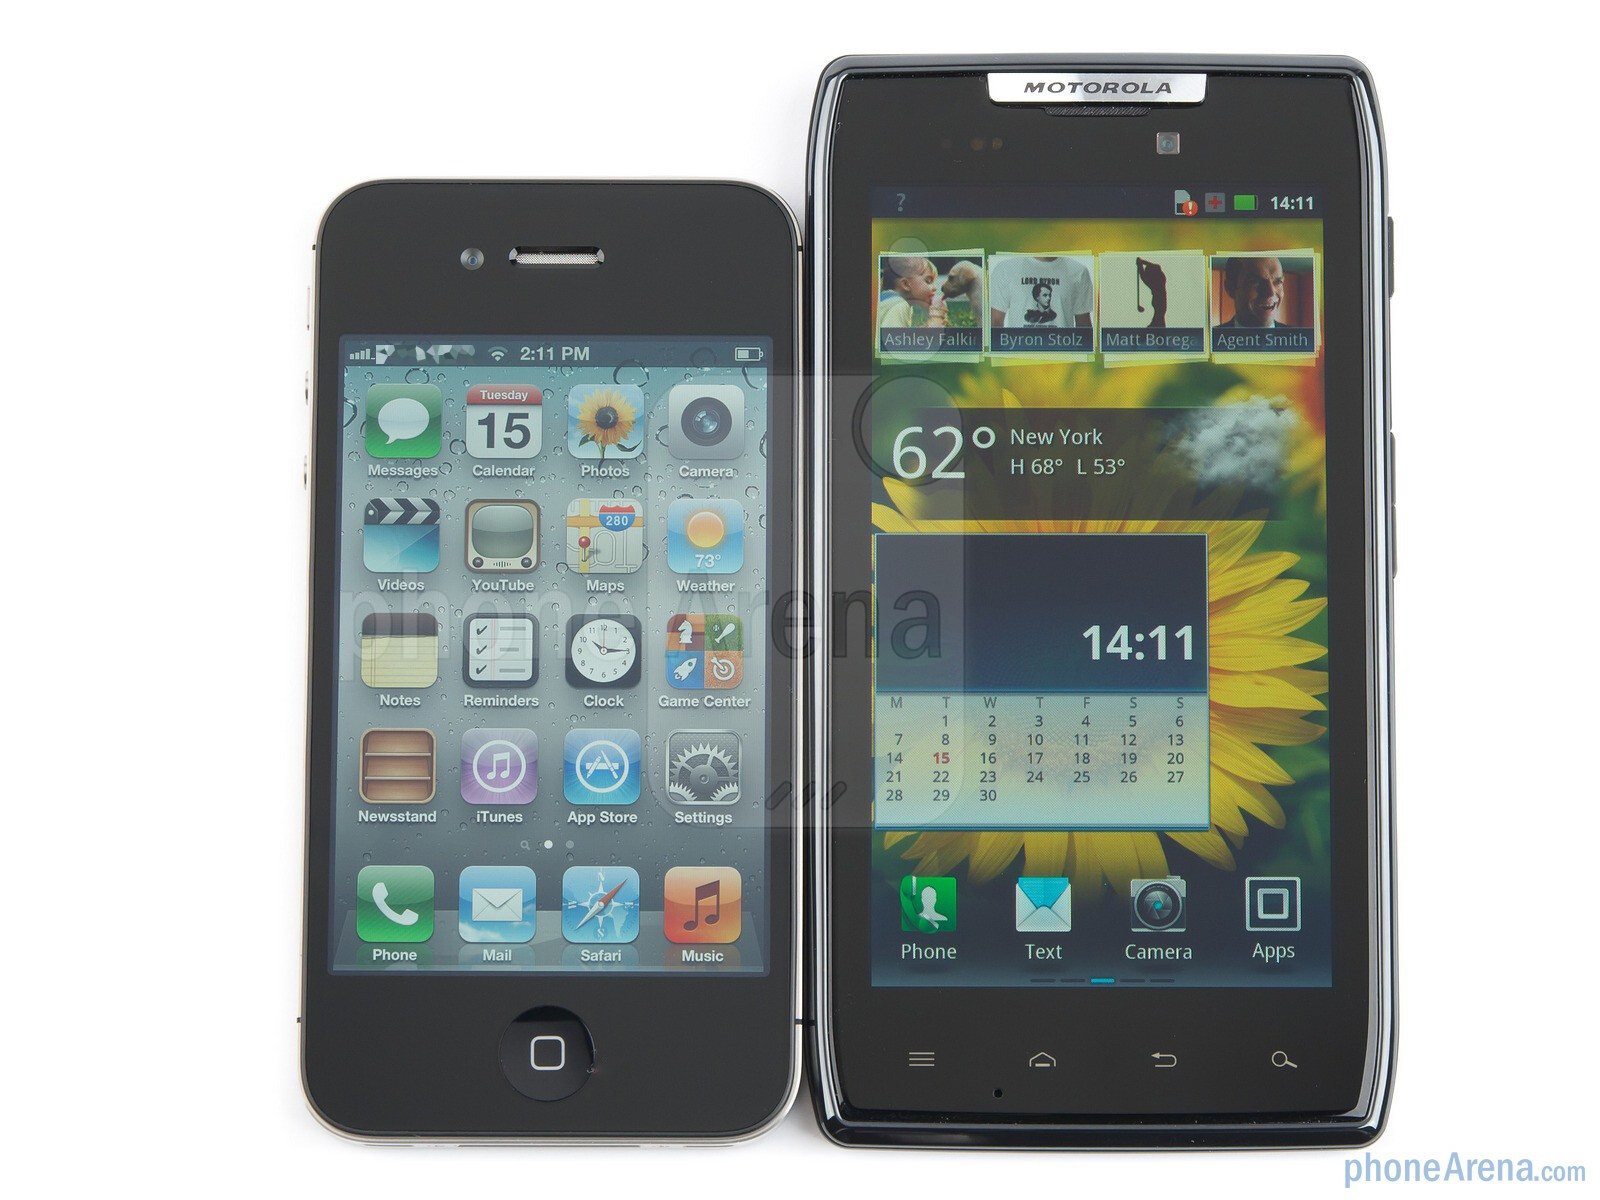 motorola razr vs apple iphone 4s design 01